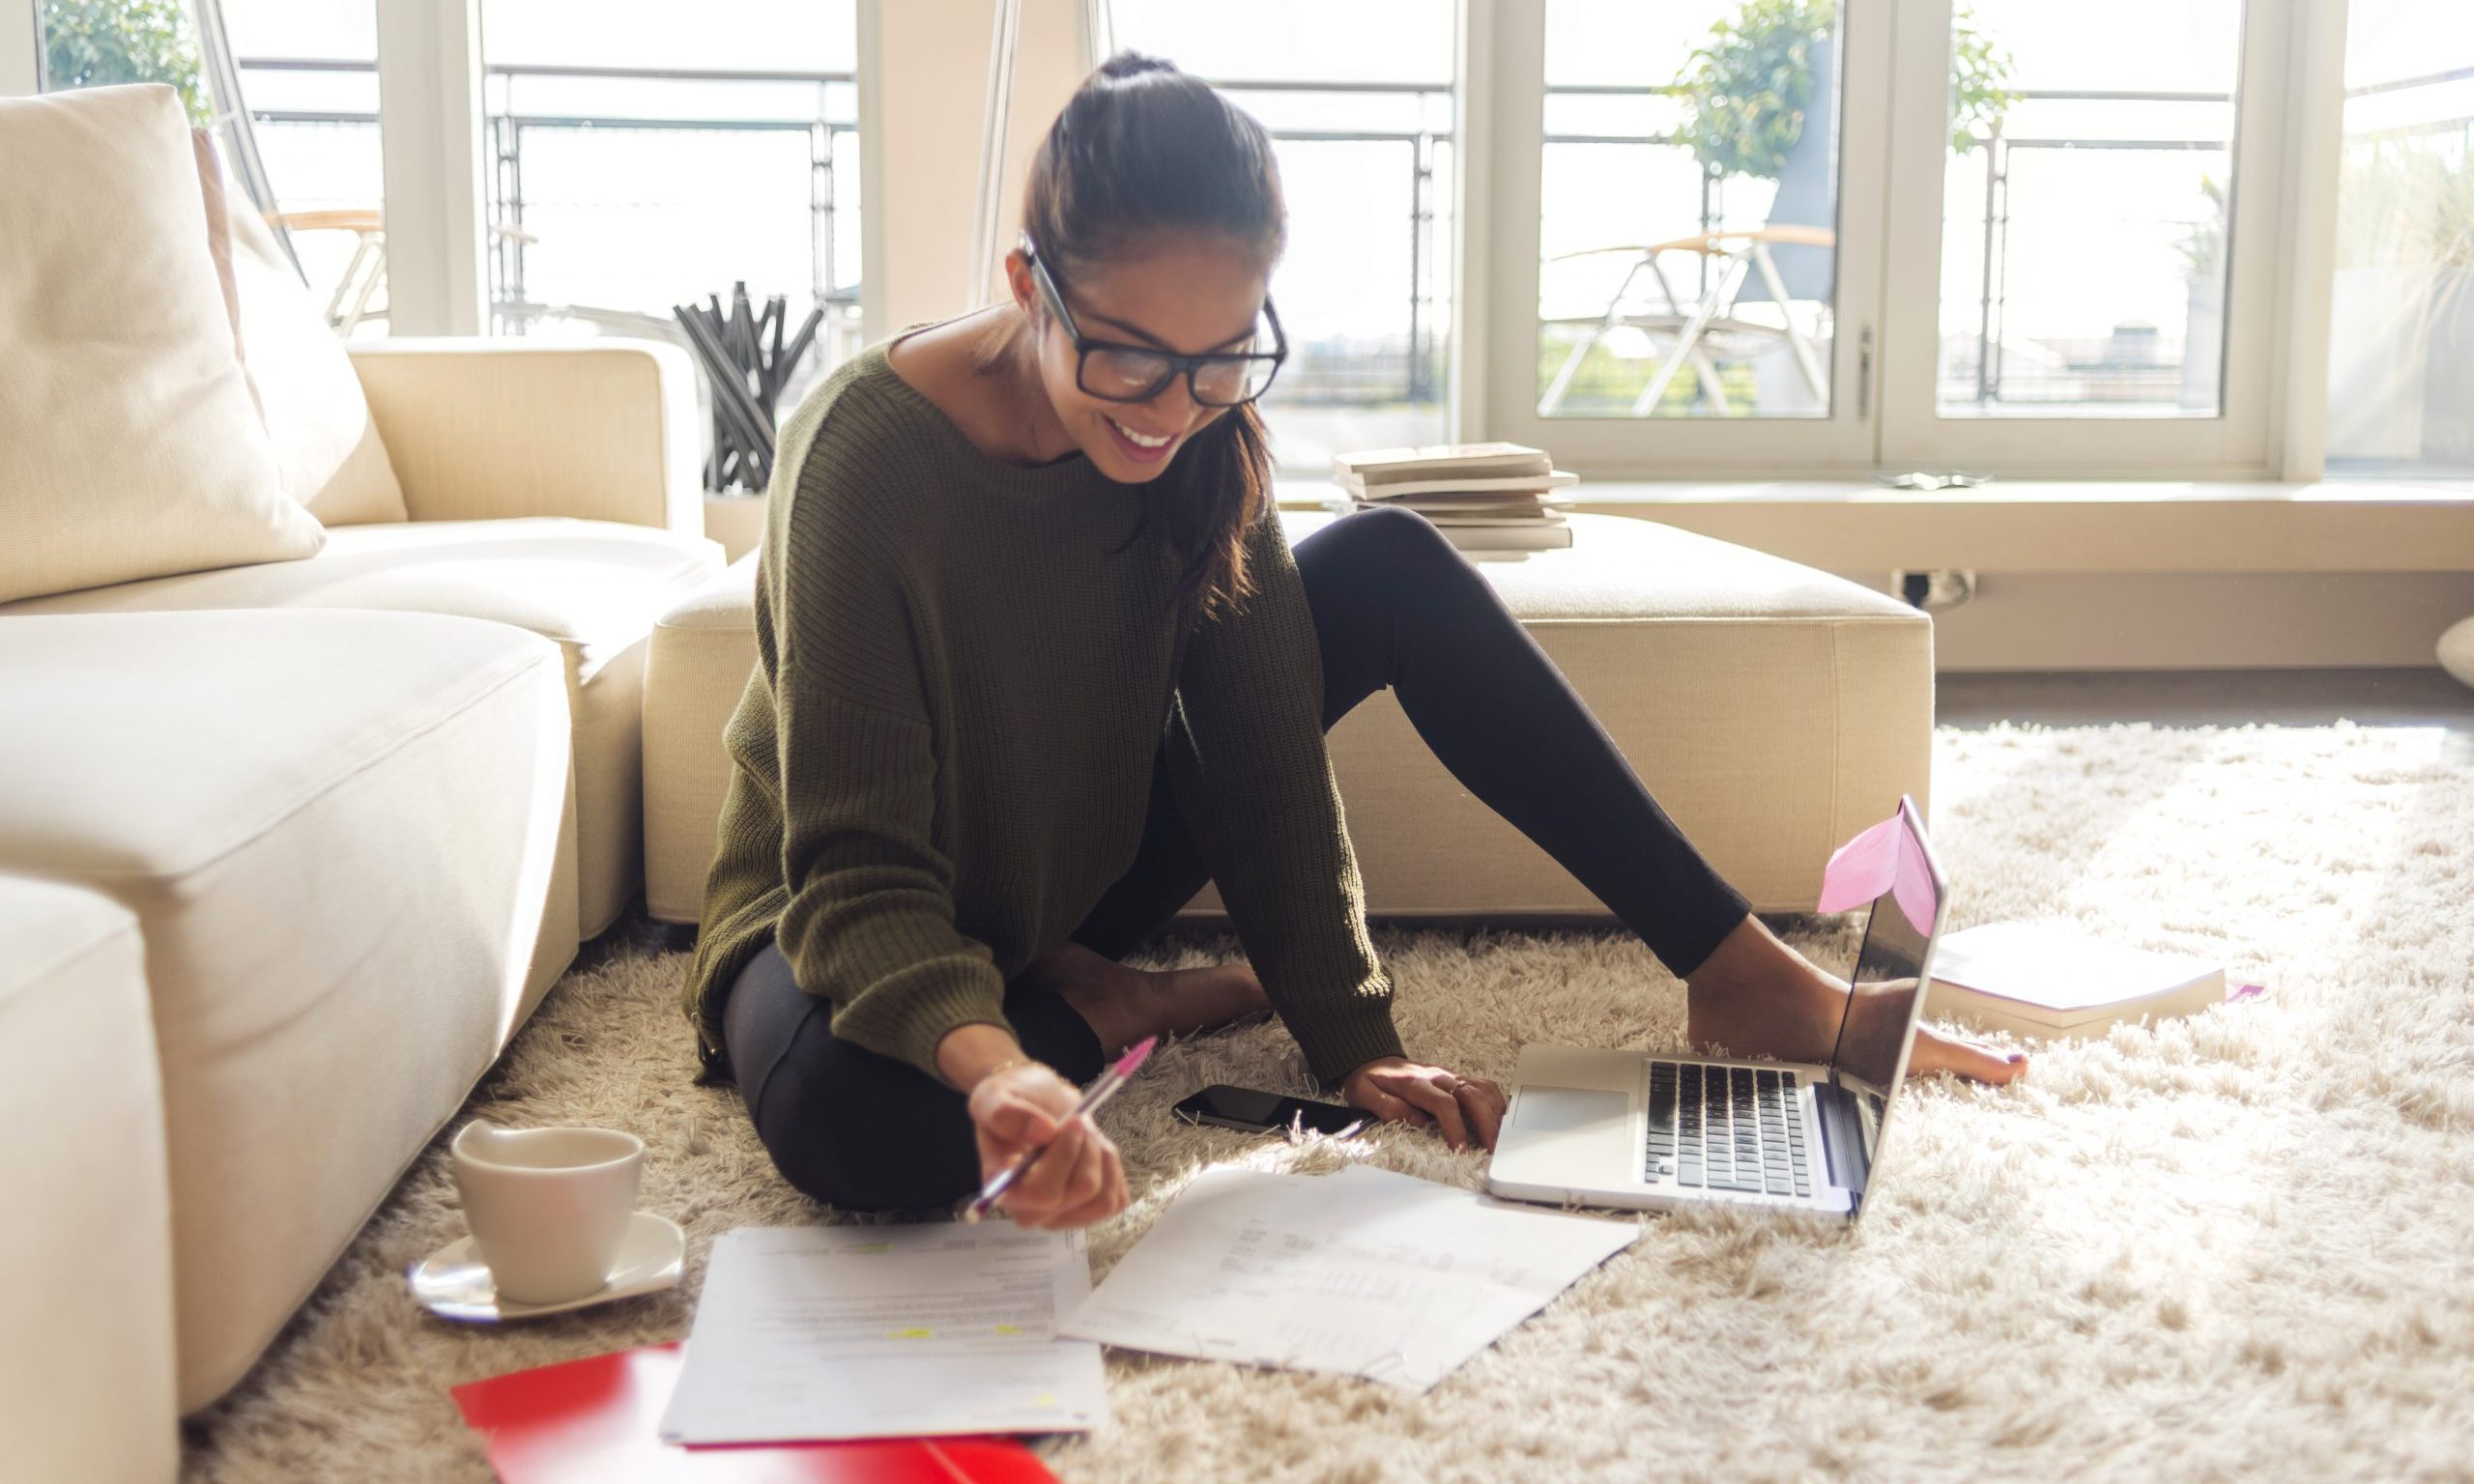 smiling young woman working on laptop in her living room